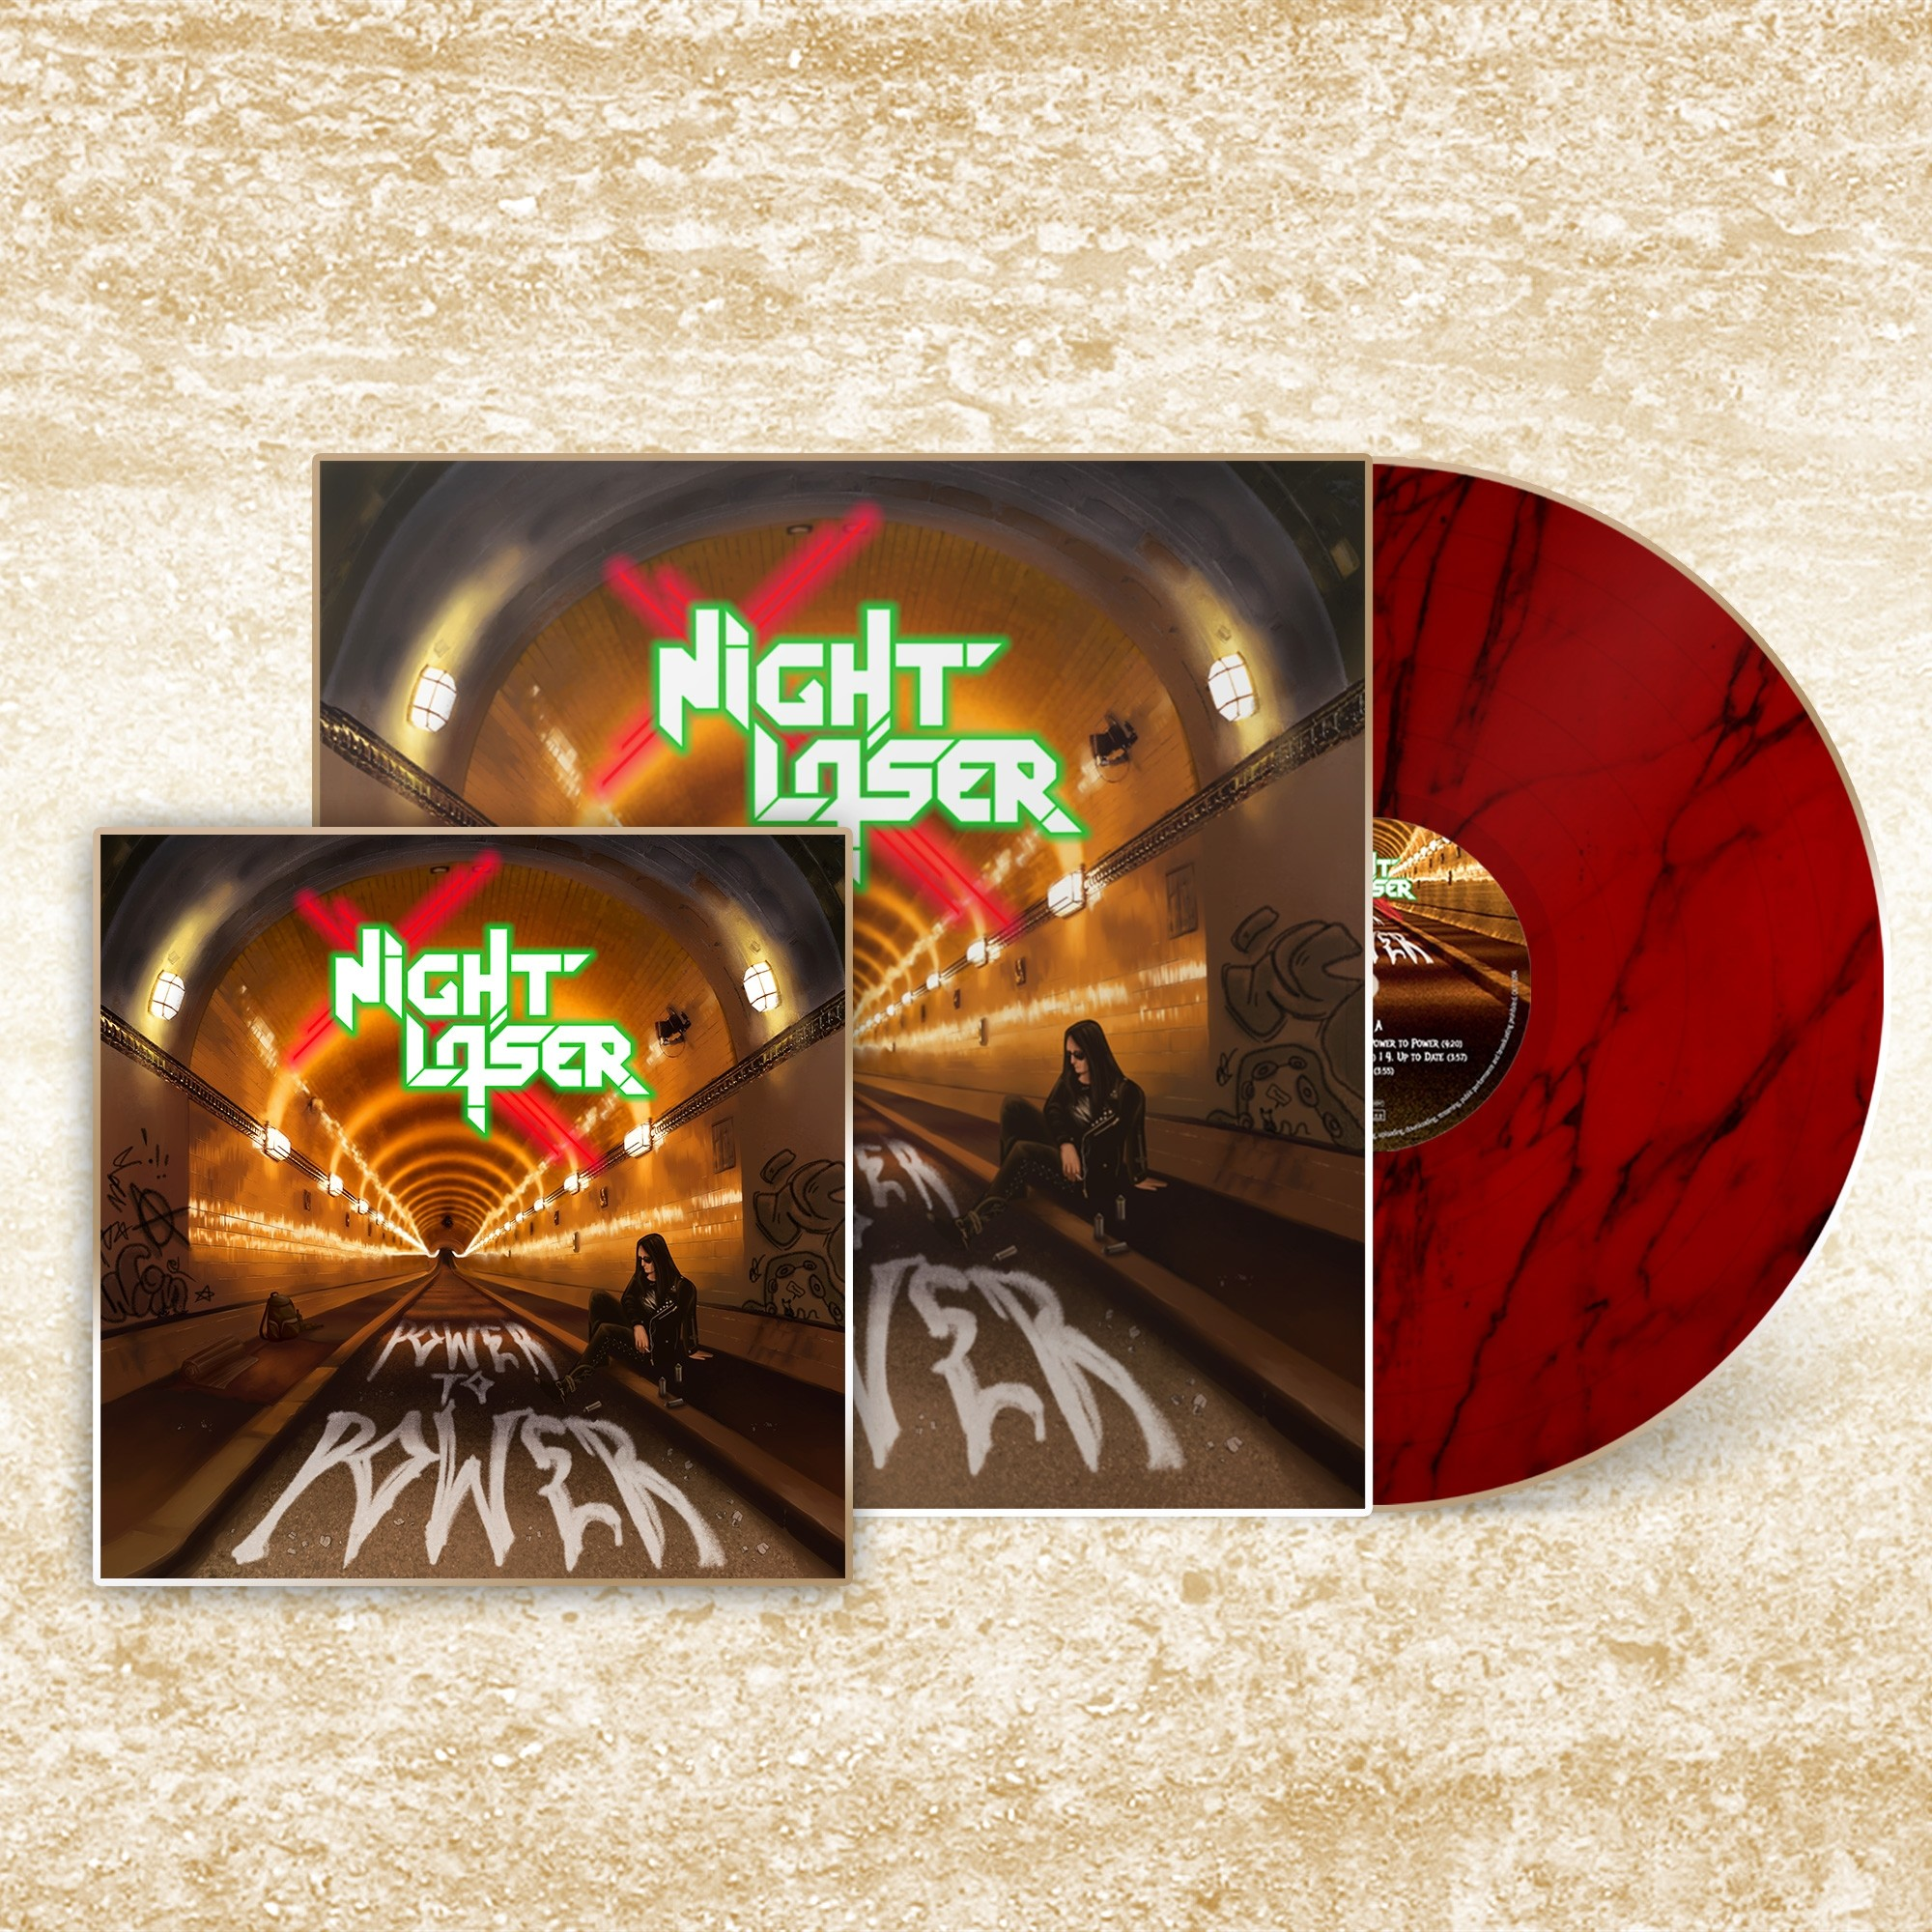 Night Laser - Power To Power - LP/CD Bundle